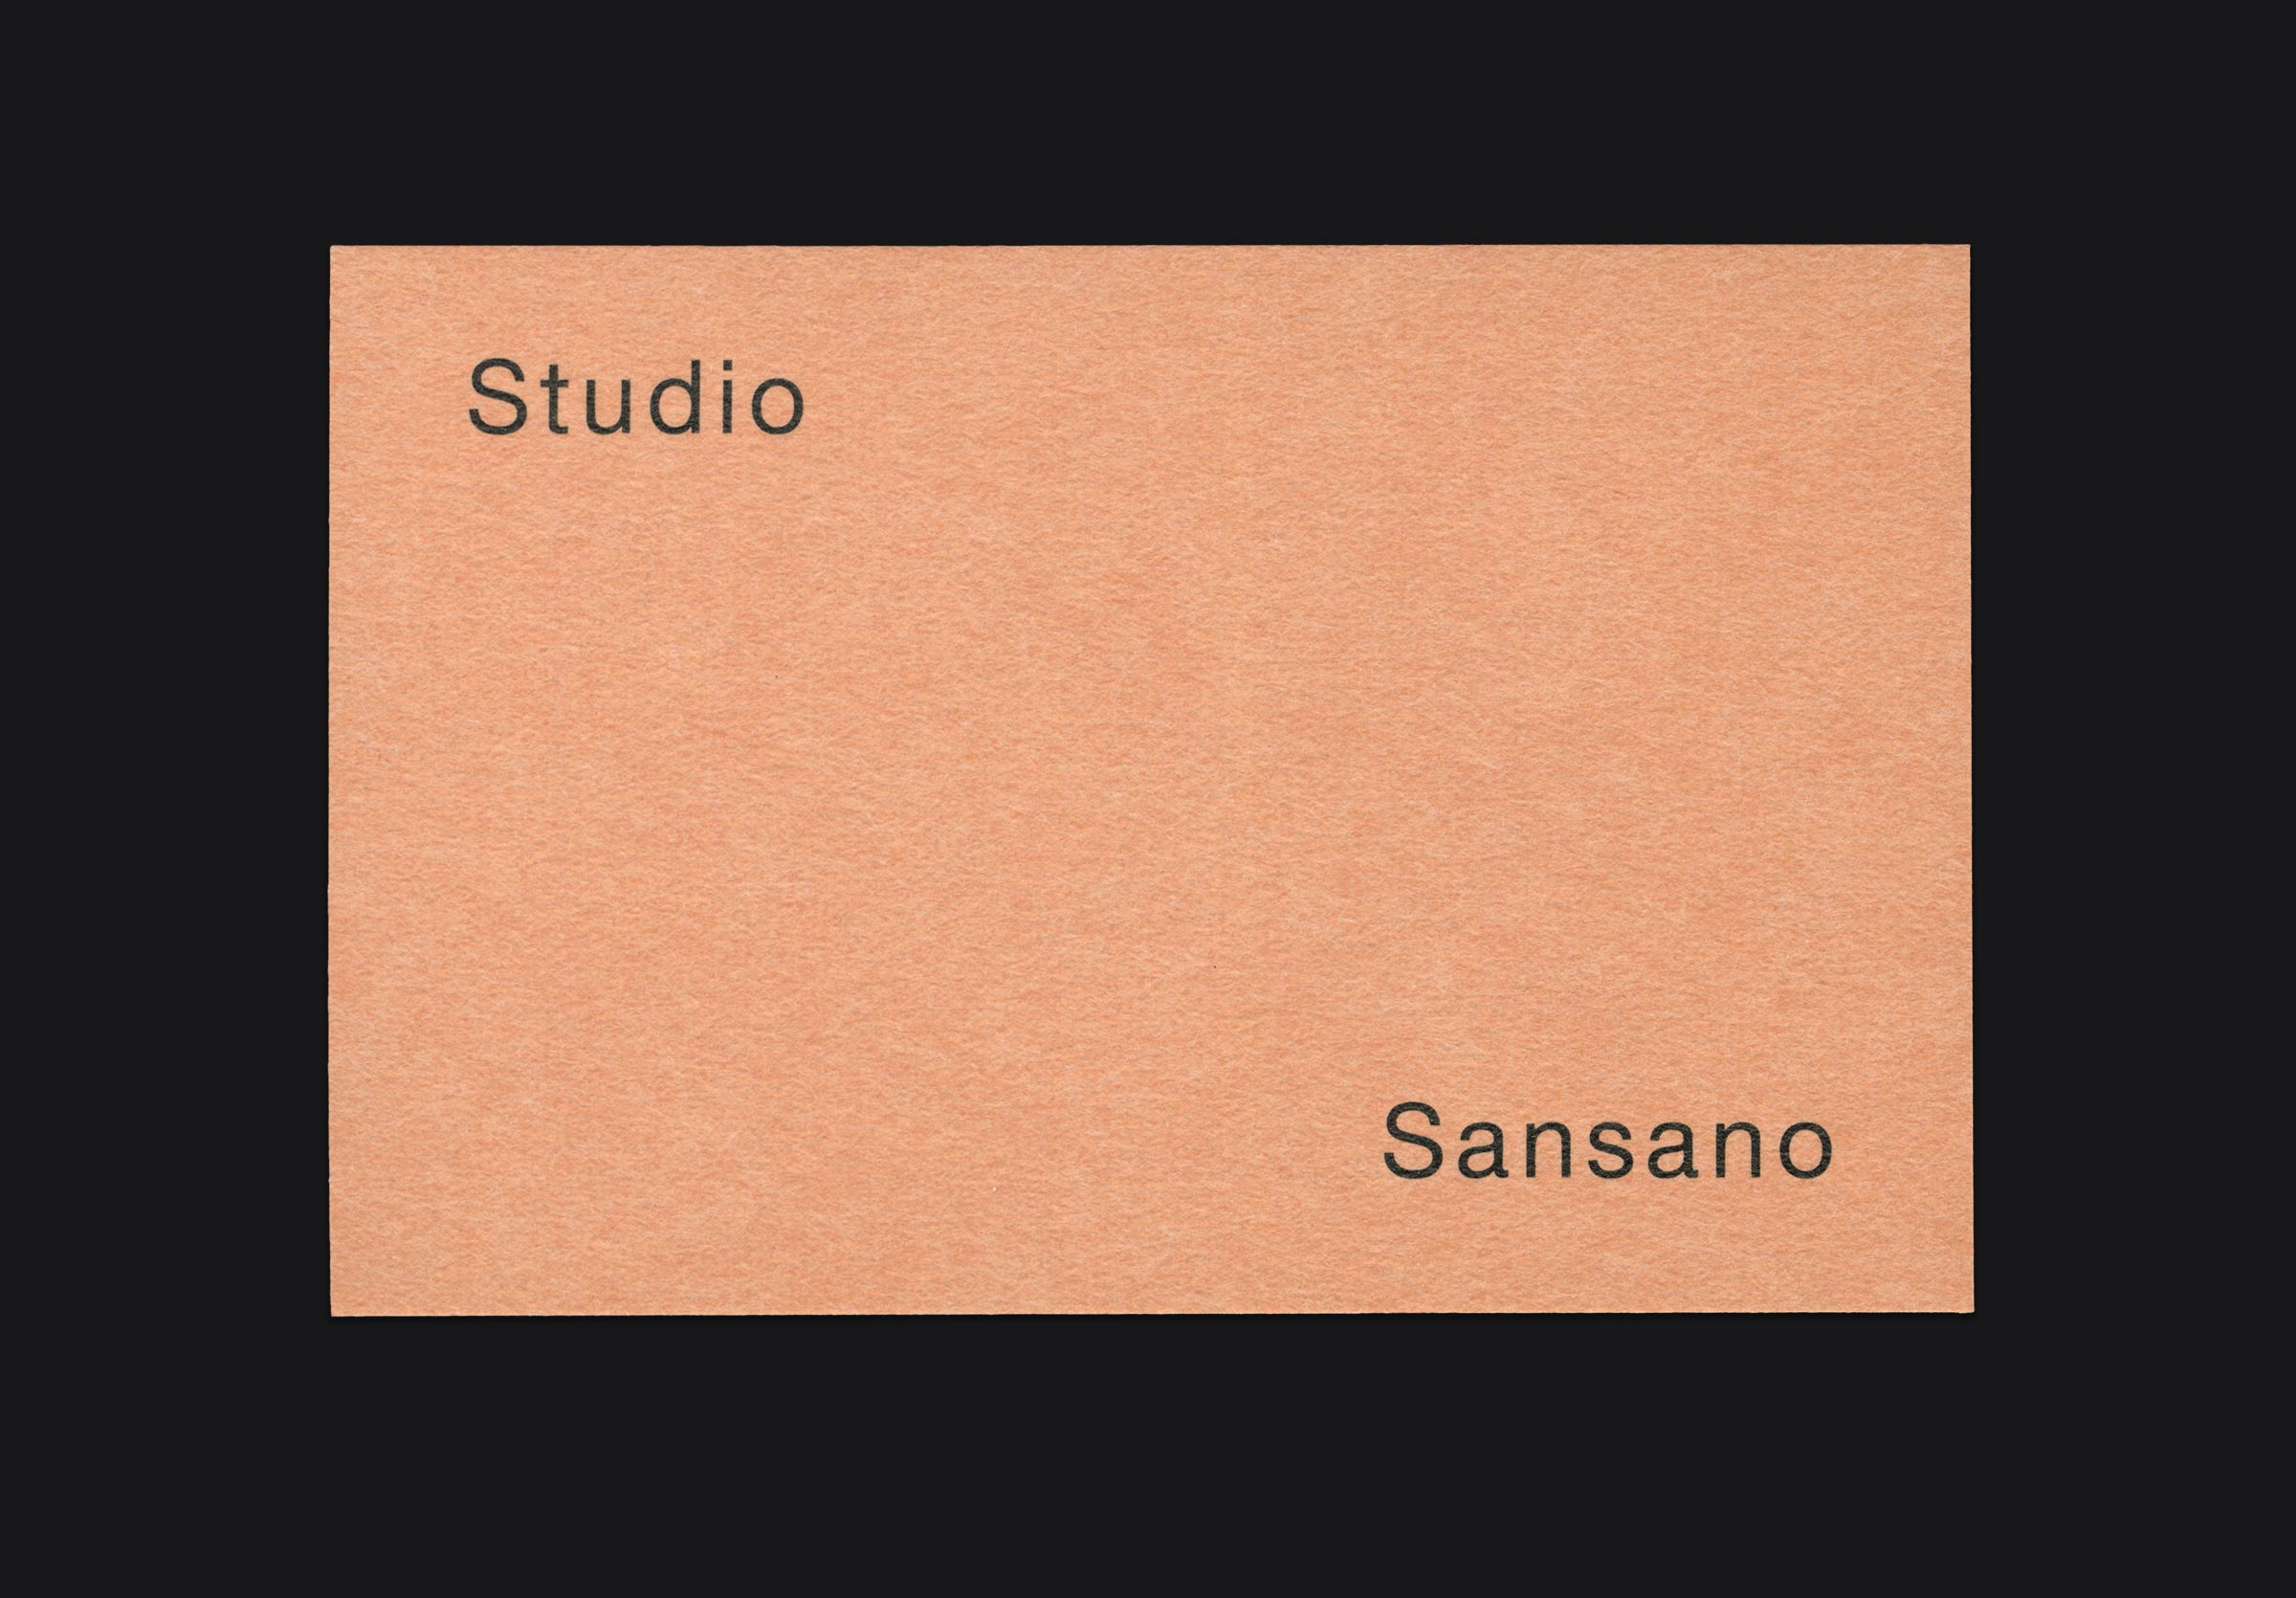 Studio Sansano Corporate Design ©Atelier Pol